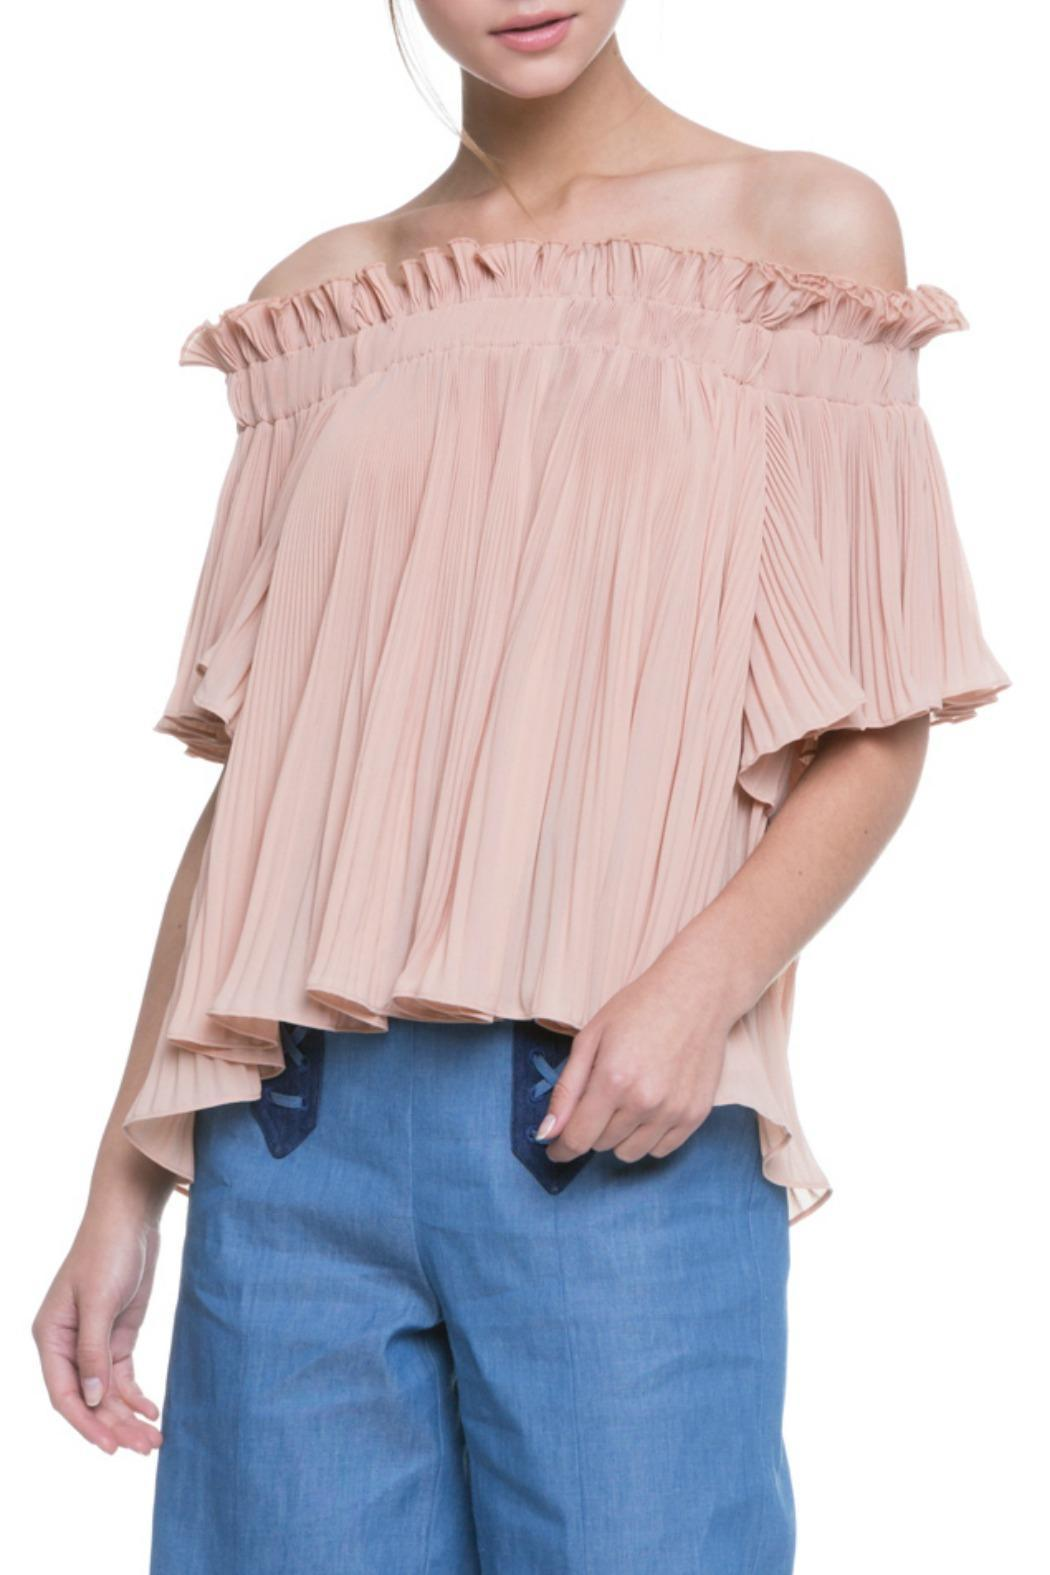 c3c449163ea Endless Rose Off The Shoulder Top from New Jersey by Seagrass ...